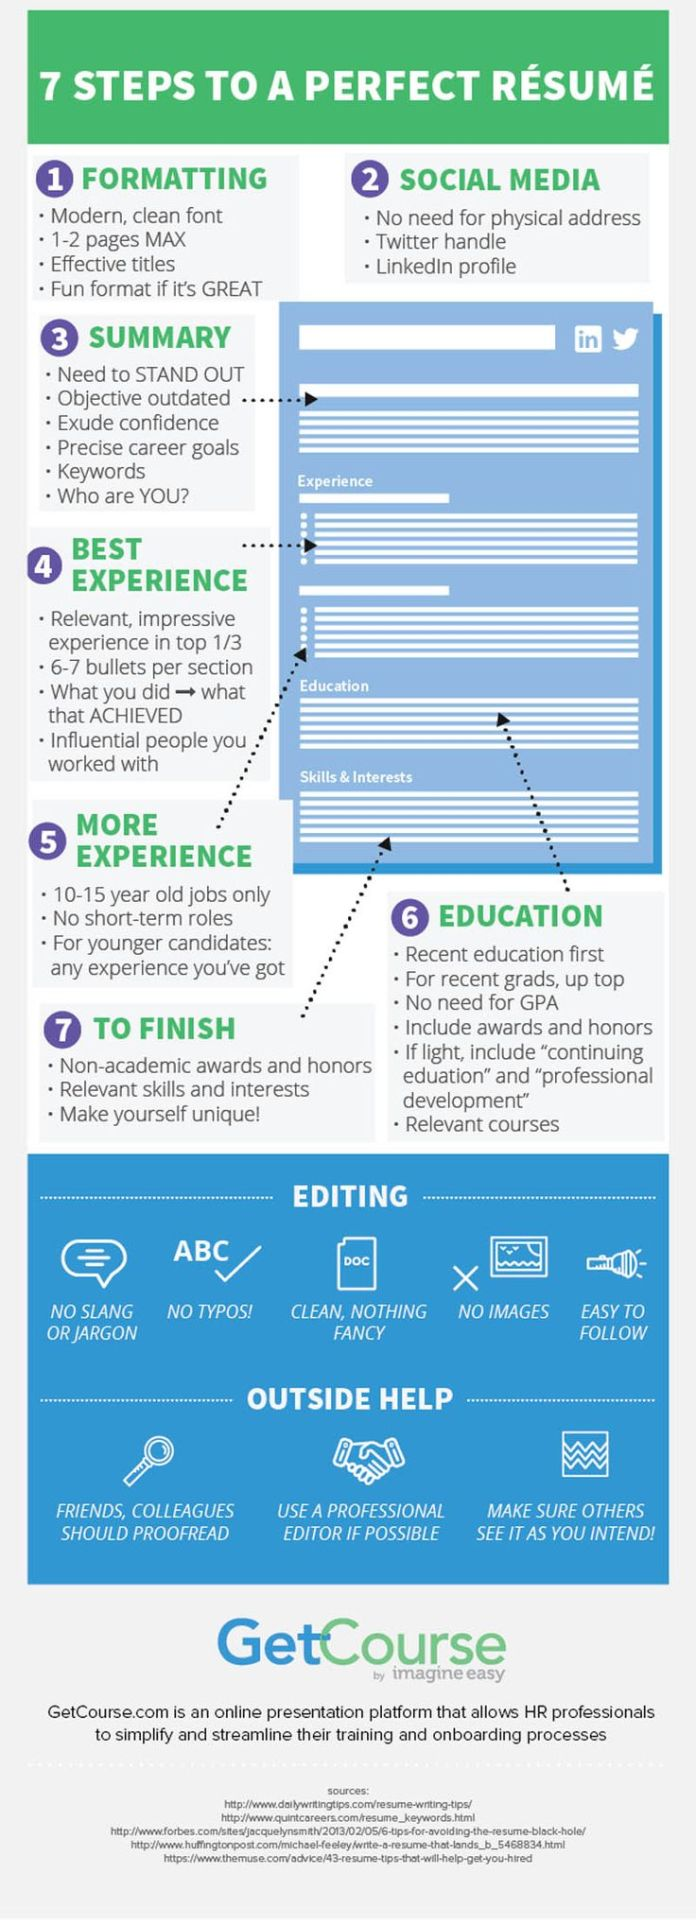 Resume Infographic 7 Steps To A Perfect Resume Infographics